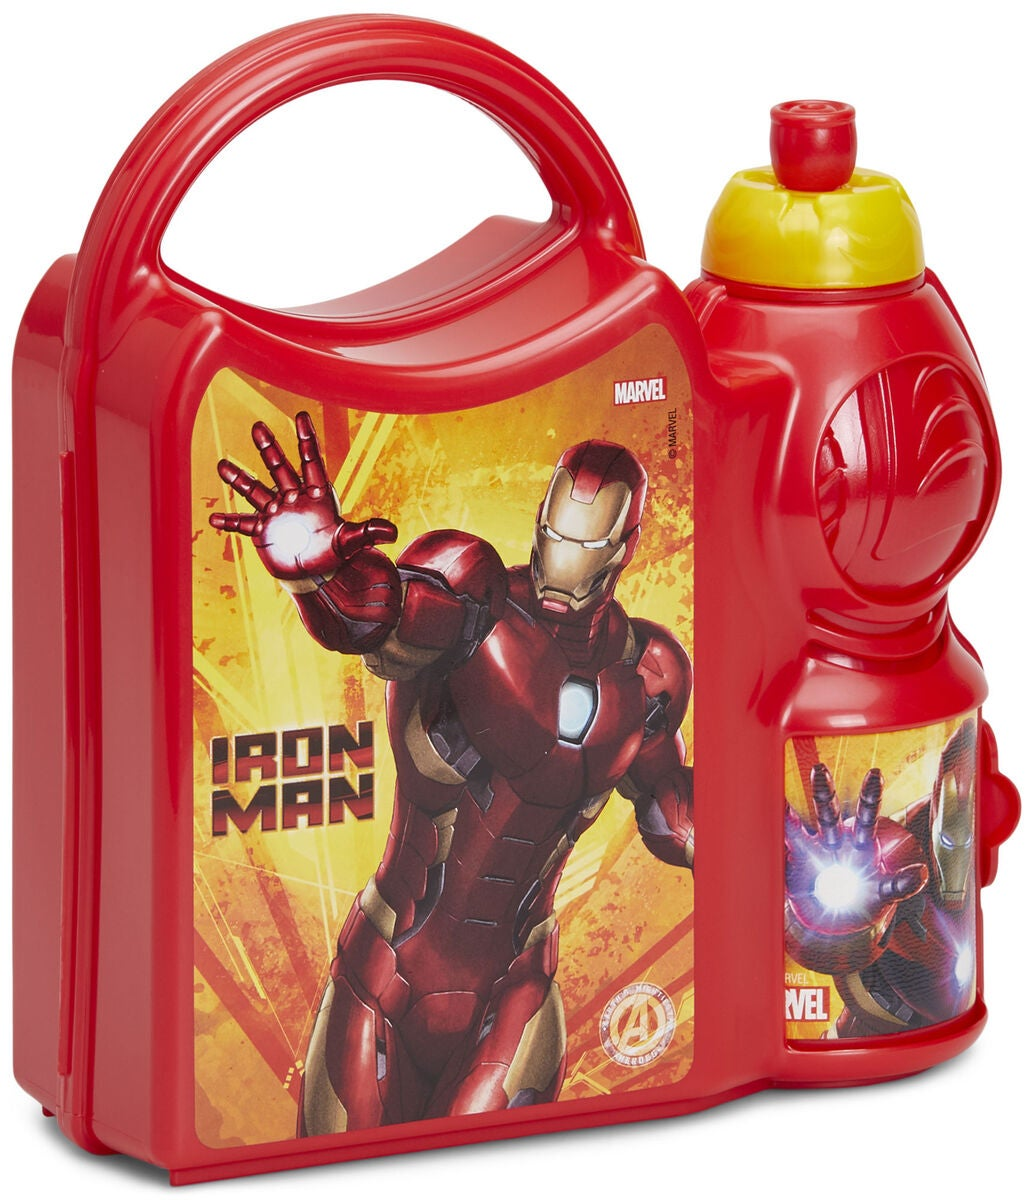 Marvel Avengers Iron Man Madkassesæt